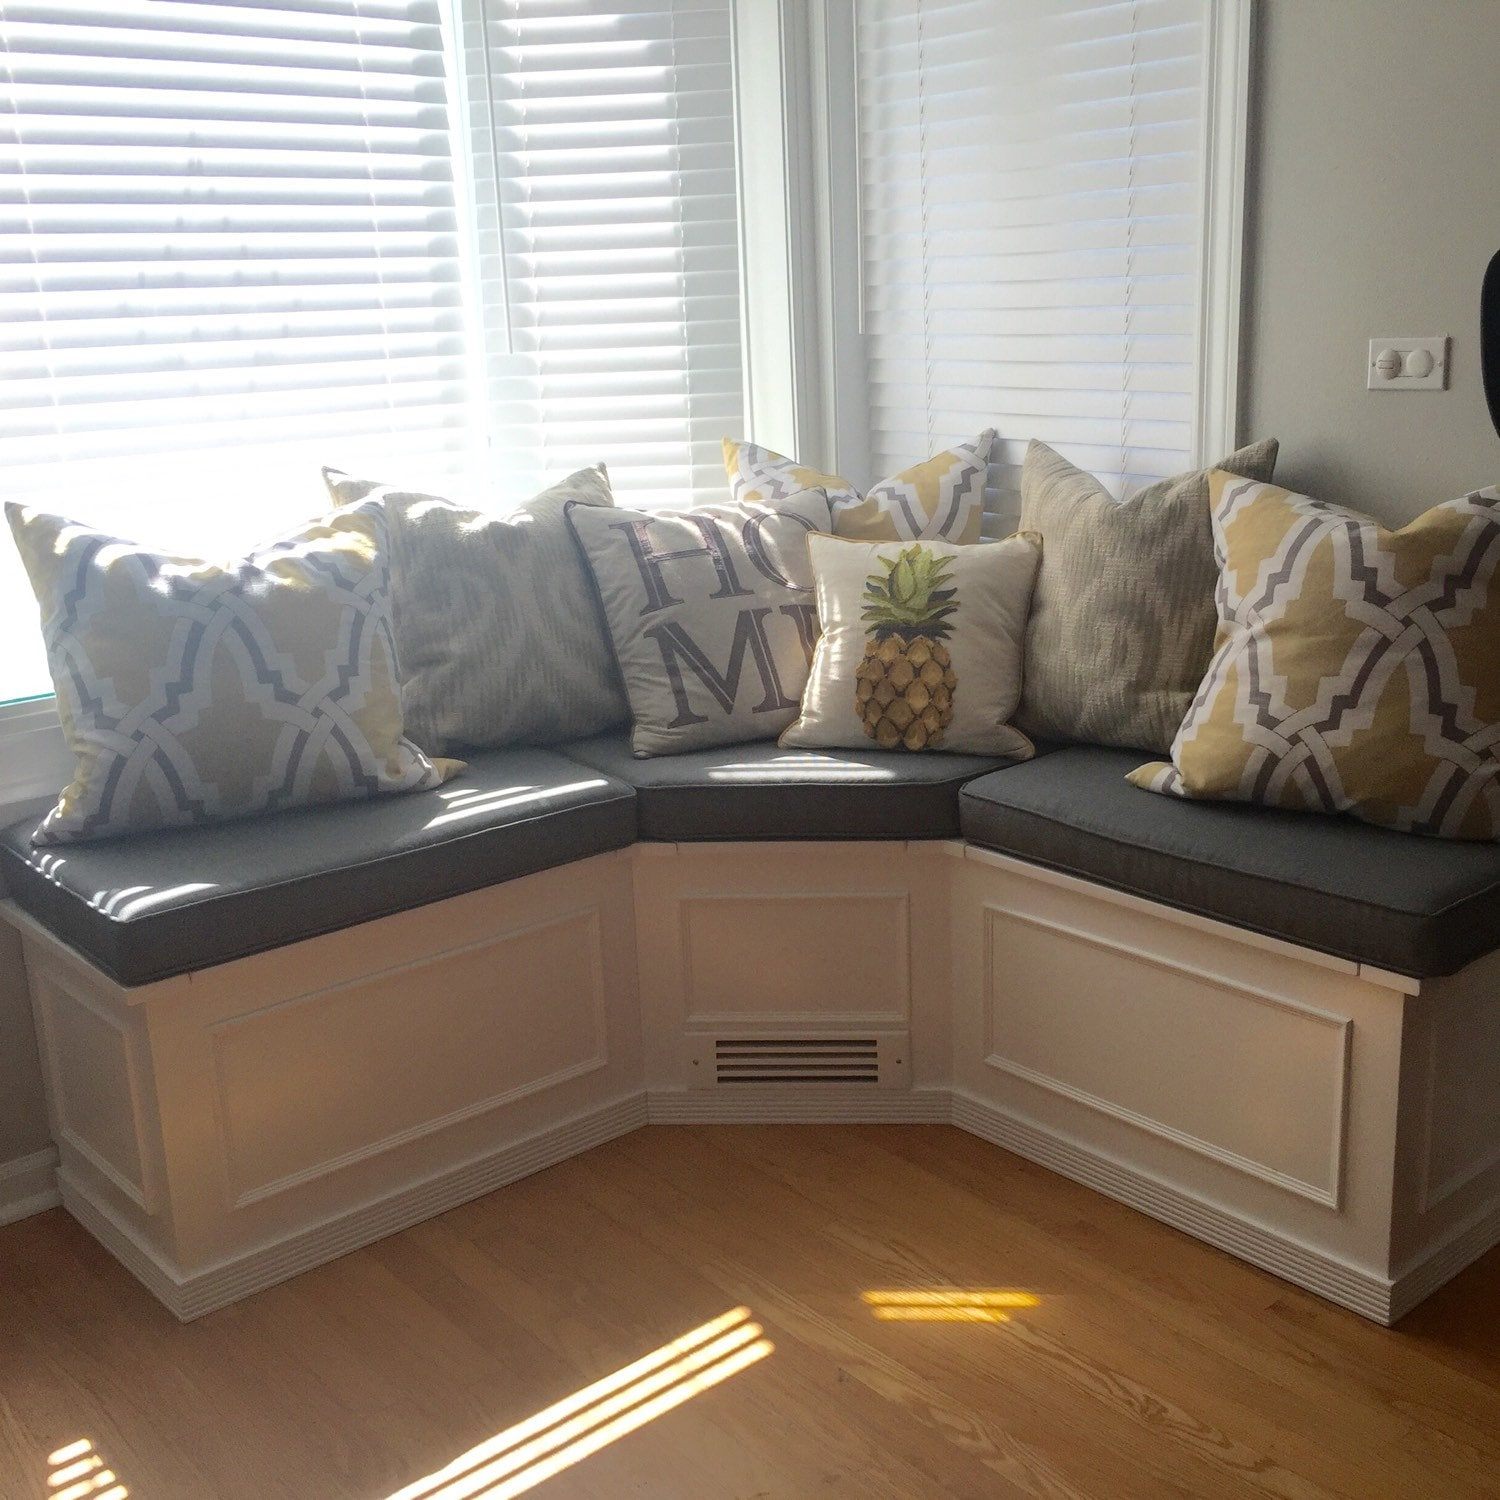 Banquette Corner Bench Seat With Storage Unfinished Raw Wood Etsy